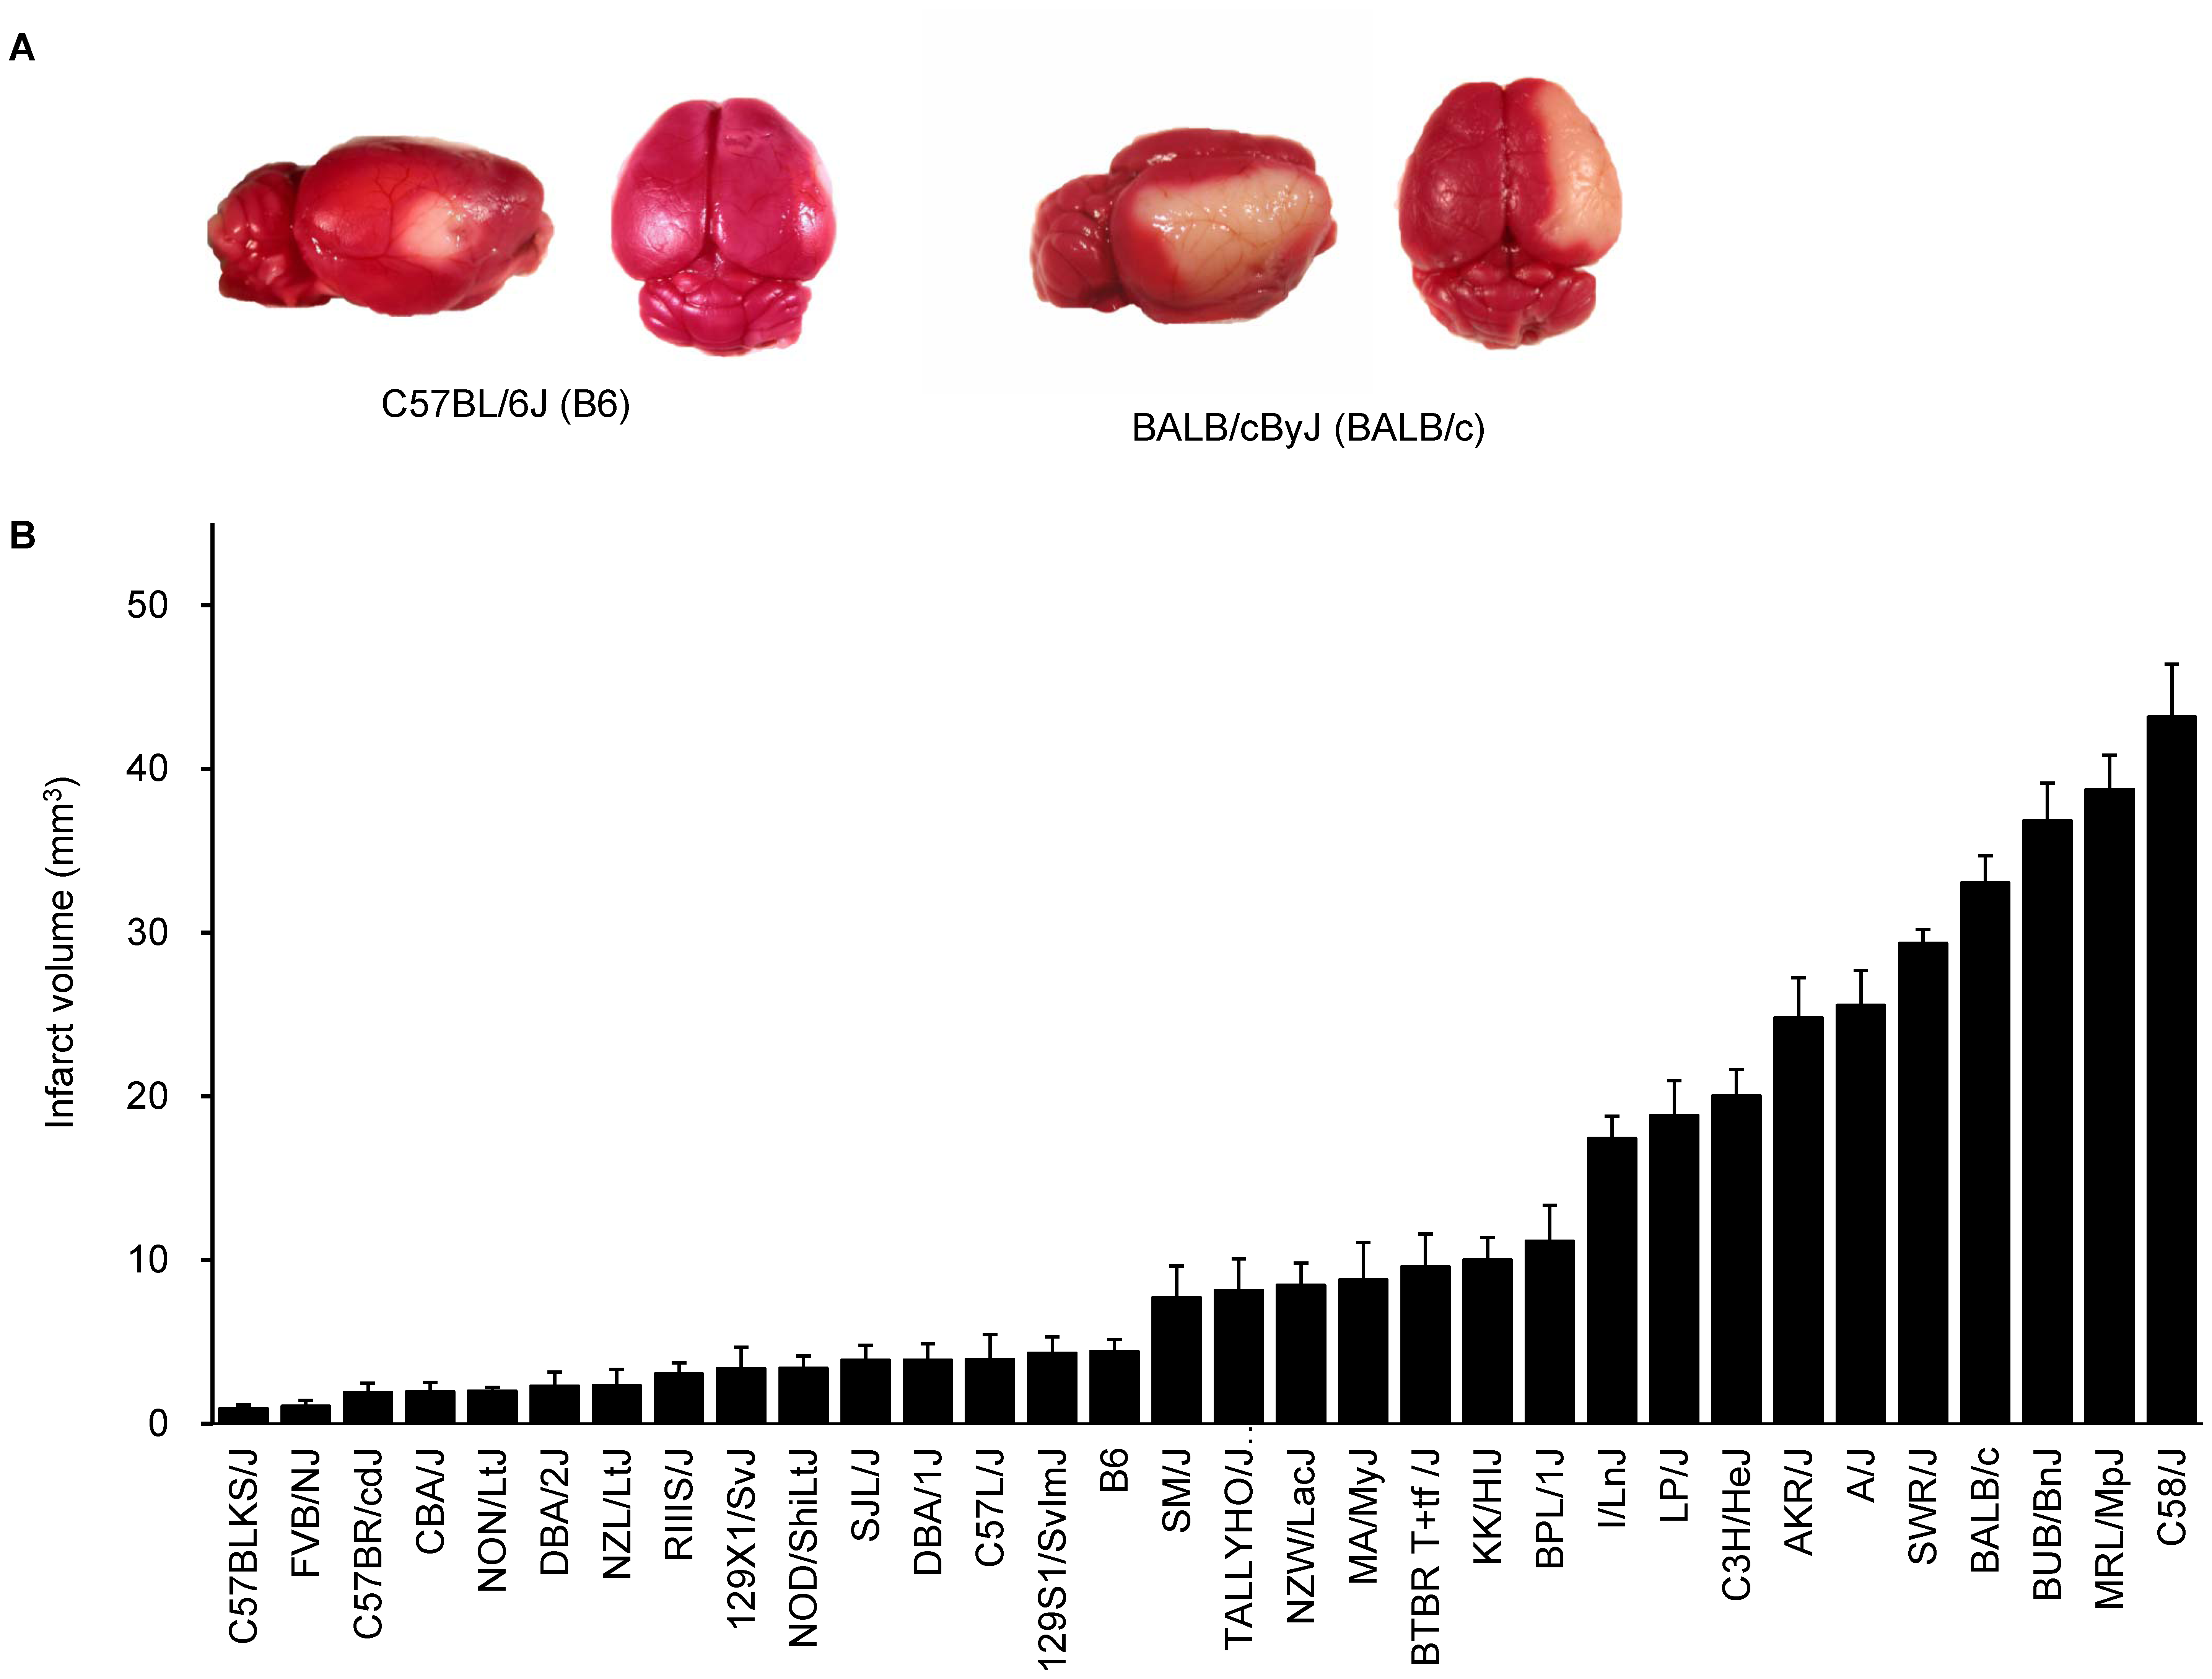 Wide phenotypic variation in infarct volume in 32 inbred mouse strains.